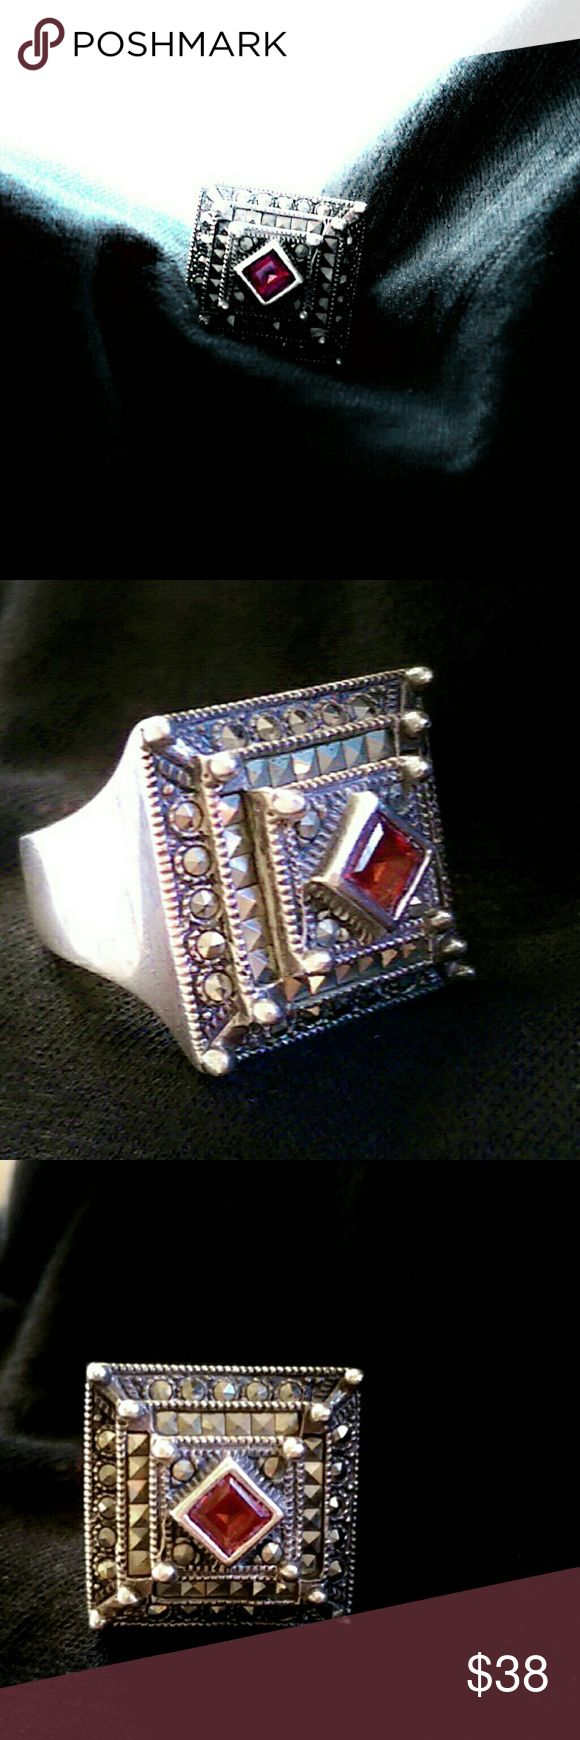 "Marcasite And Garnet Art Deco Ring (Dee Berkley) Show stopping marcasite and garnet ring by famous jewelry designer Dee Berkley. This unique piece has 3 layers of marcasite tiered to a single garnet setting- giving it texture and depth. Band has partial open work, in a zig-zag effect. This is an earlier piece by the artist. Sterling 925 stamp and artist hallmark inside band. Ring has a height of approximately 1/2"" and face measures 3/4"" across. Pictures do not do this beauty justice! This…"